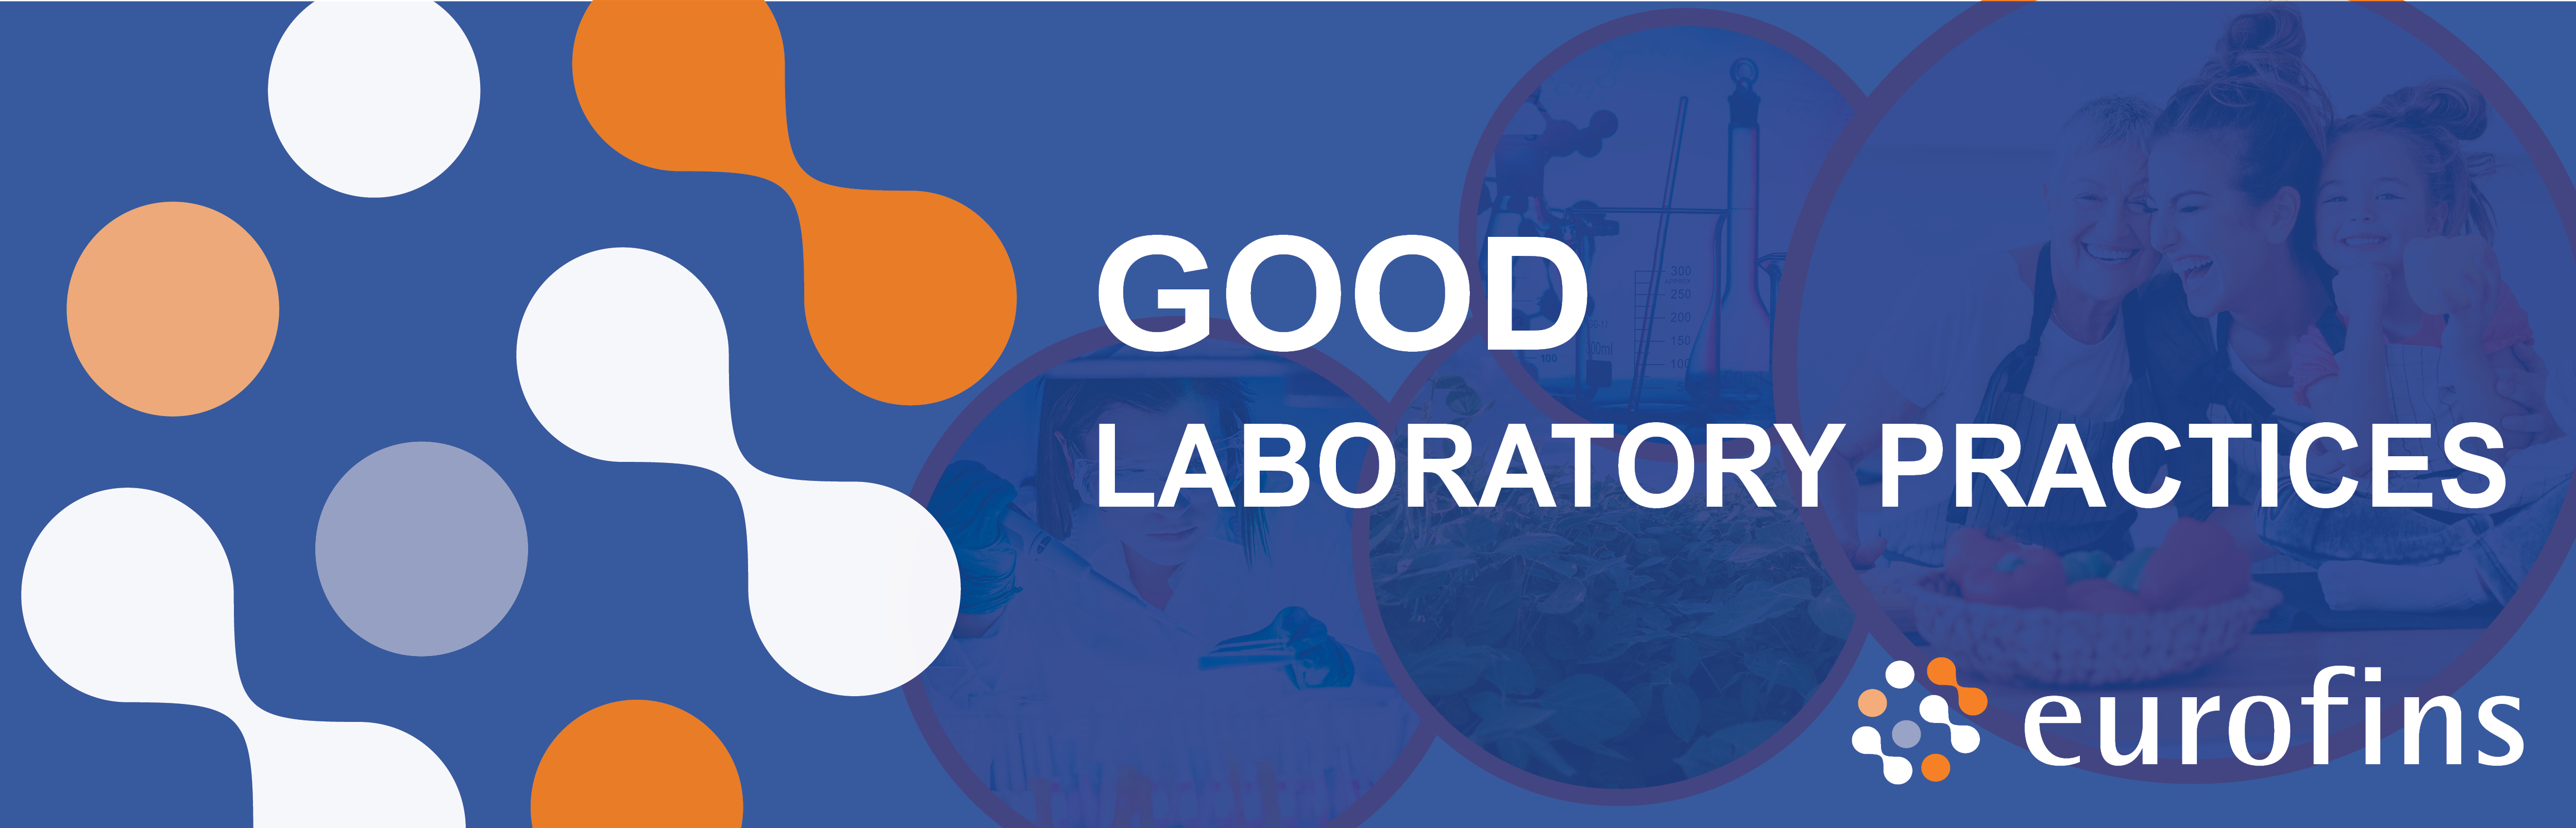 Good Laboratory Practices within Food Plant Labs